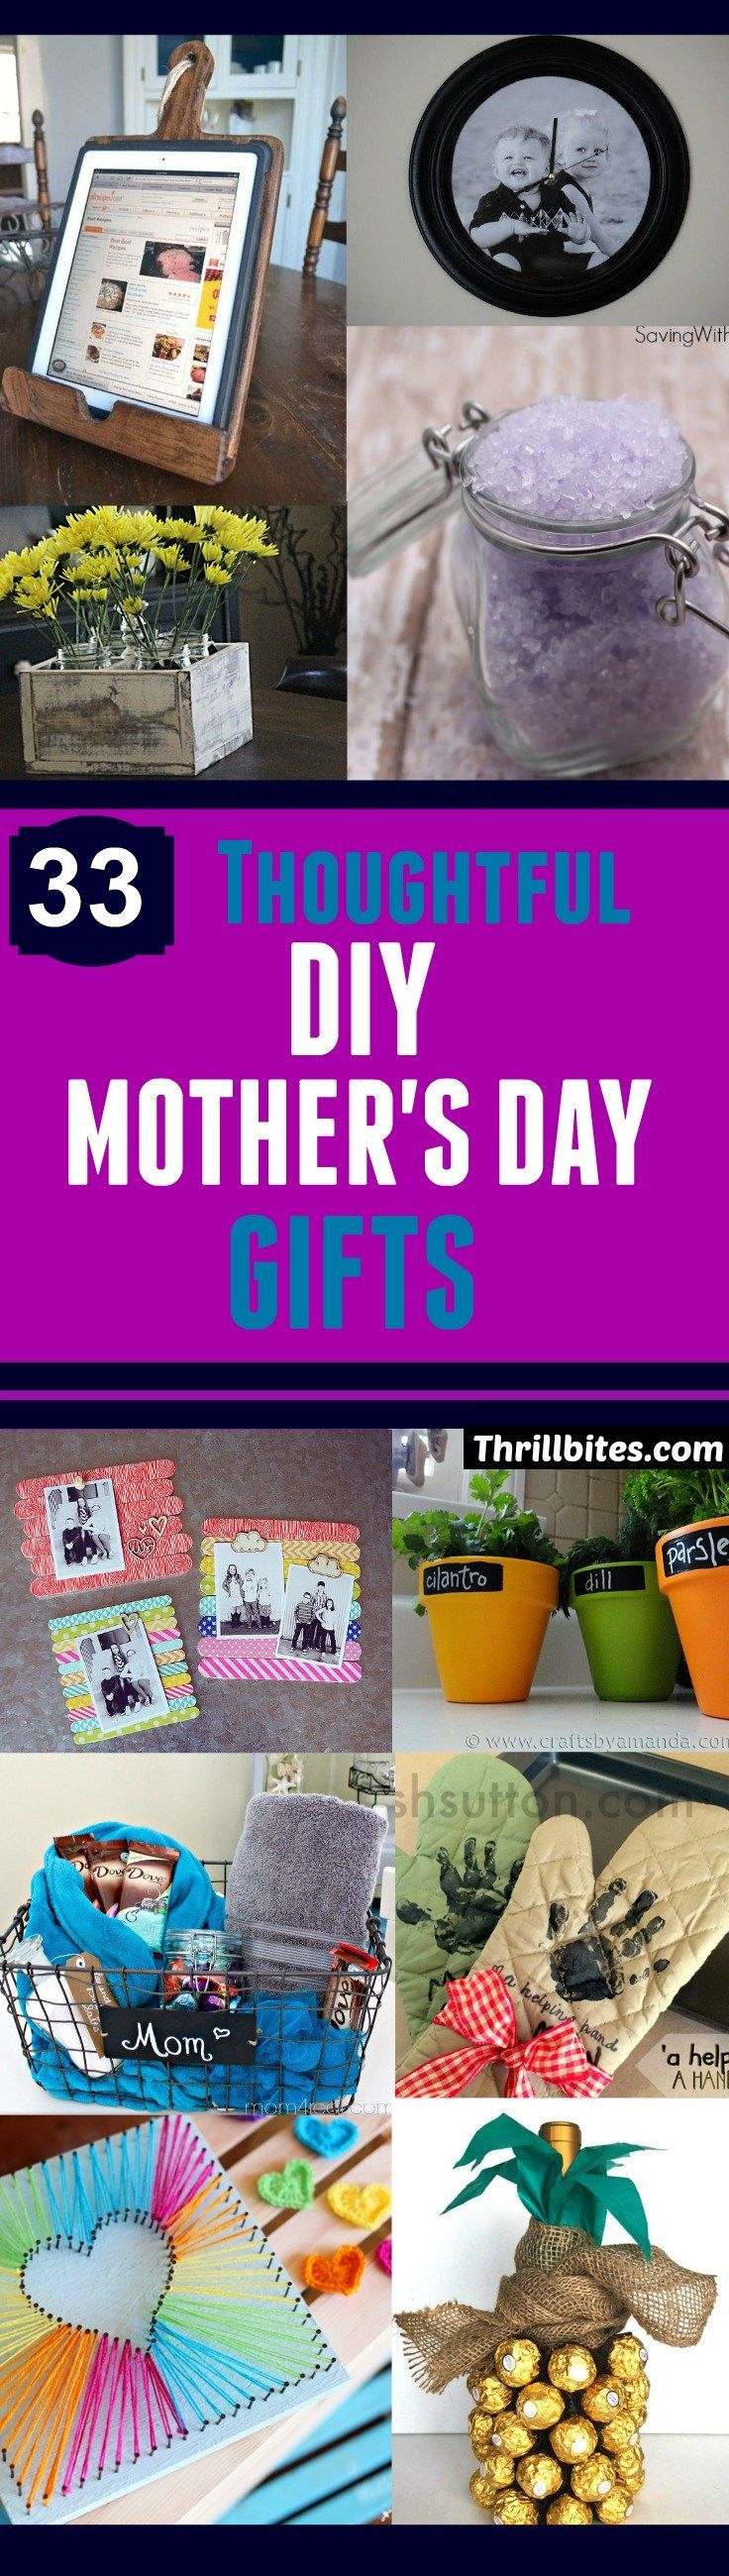 33 thoughtful diy mothers day gifts envoltura de regalos 33 thoughtful diy mothers day gifts creative diy mothers day gifts ideas thoughtful homemade solutioingenieria Image collections